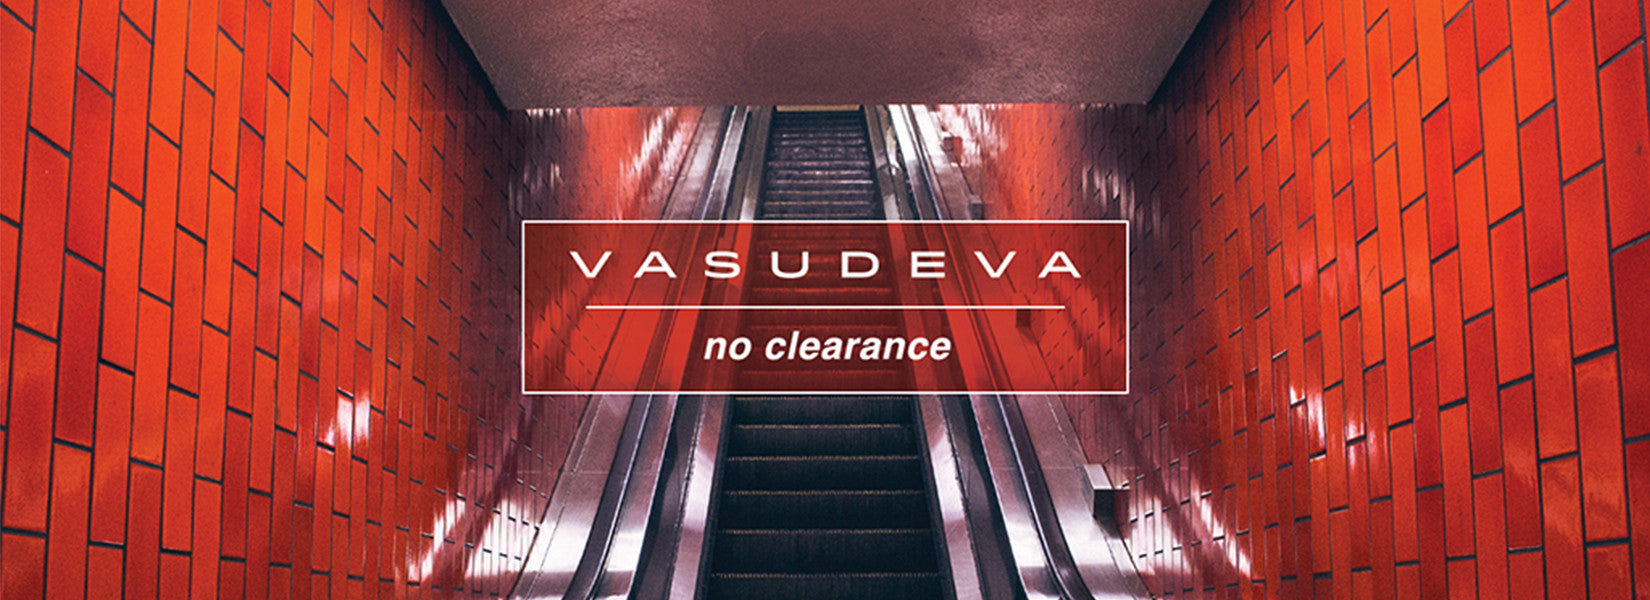 "Vasudeva Share New Song ""Take Away""; Pre-orders For No Clearance Available Now!"